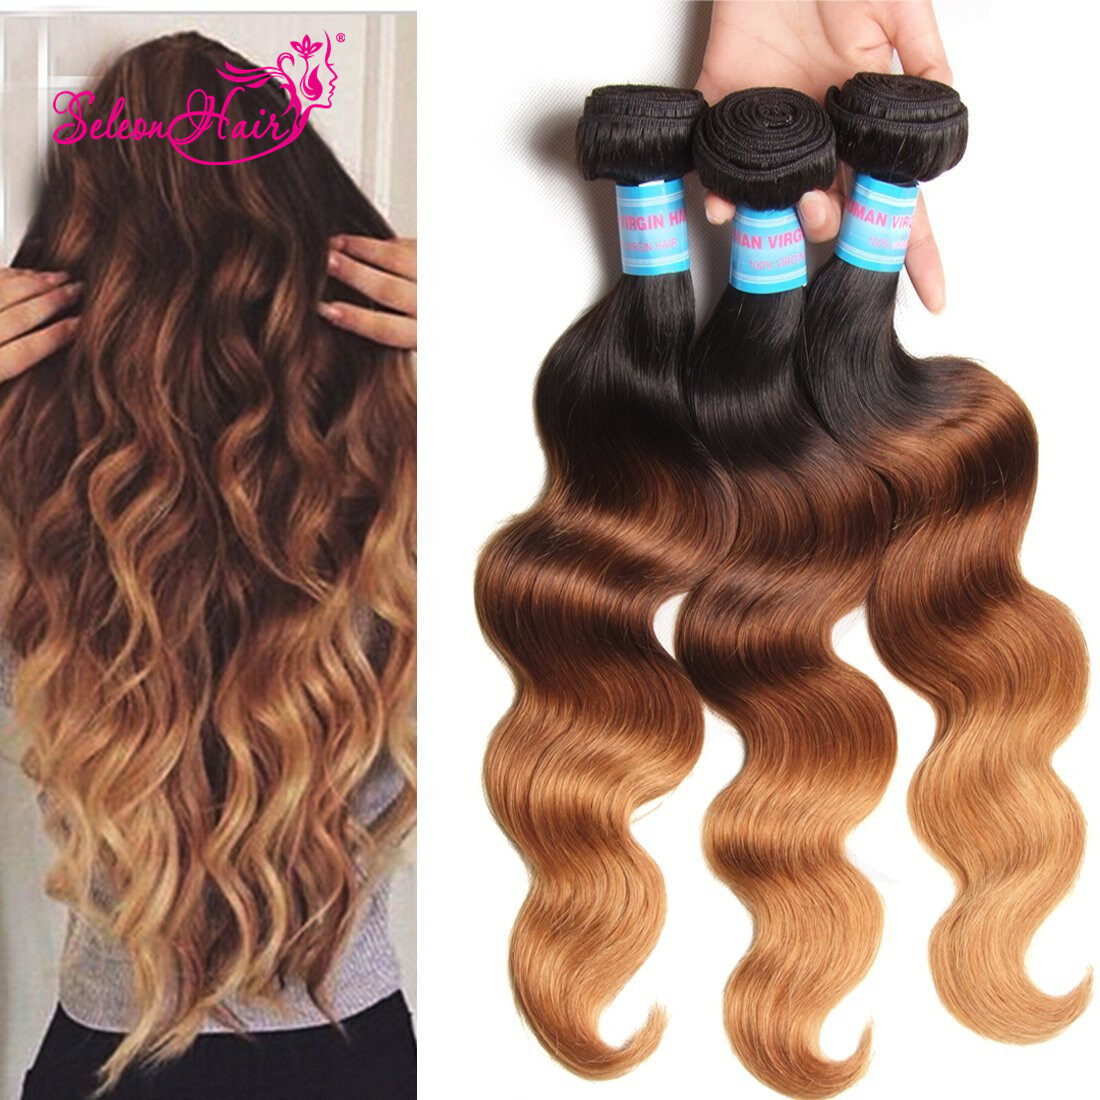 Seleonhair Malaysian Ombre Hair Extensions Human Hair Weaves 1b427